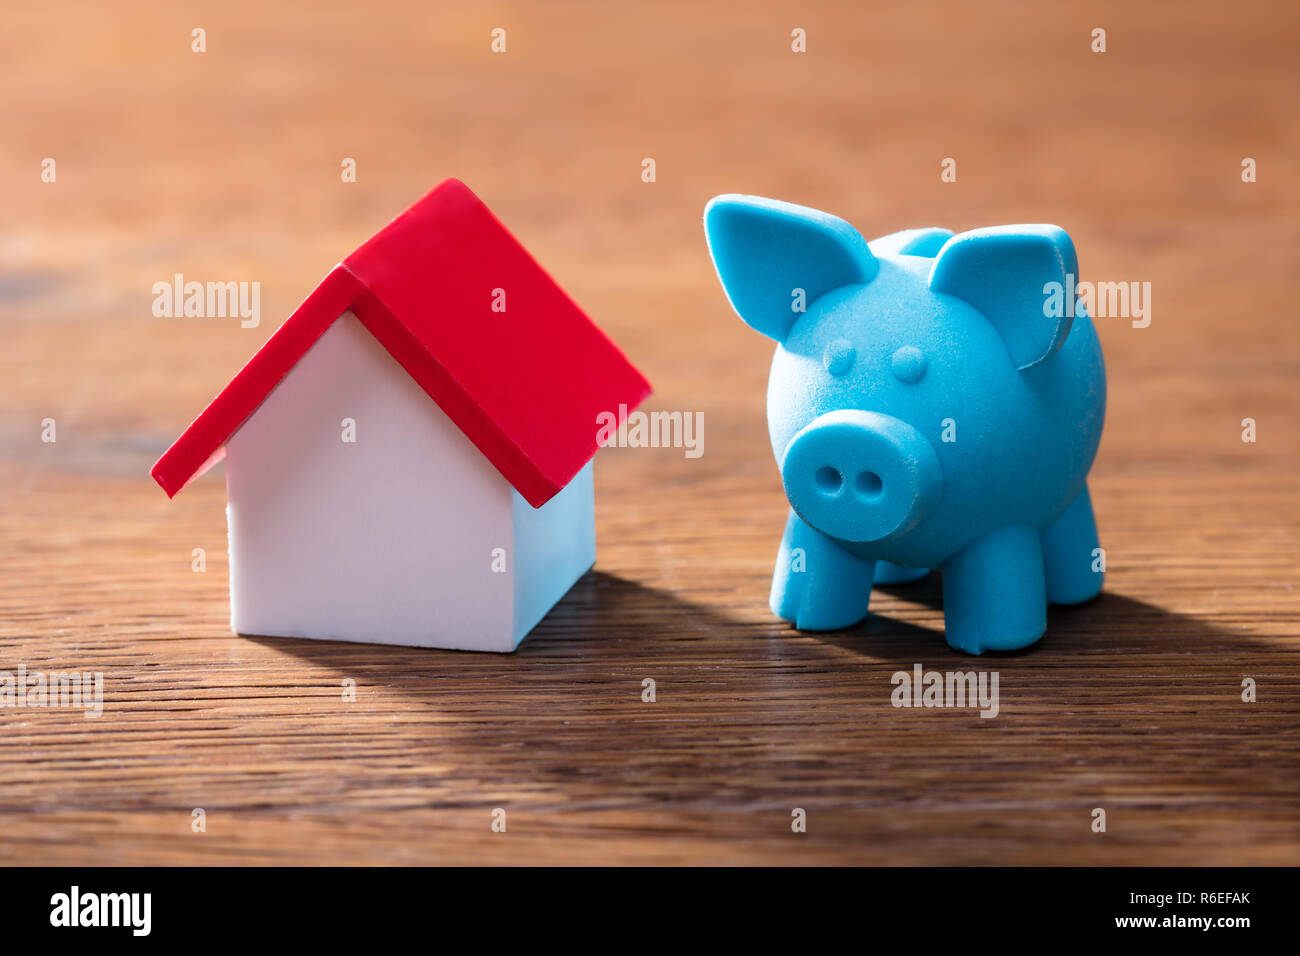 House Model And Piggybank On Table - Stock Image